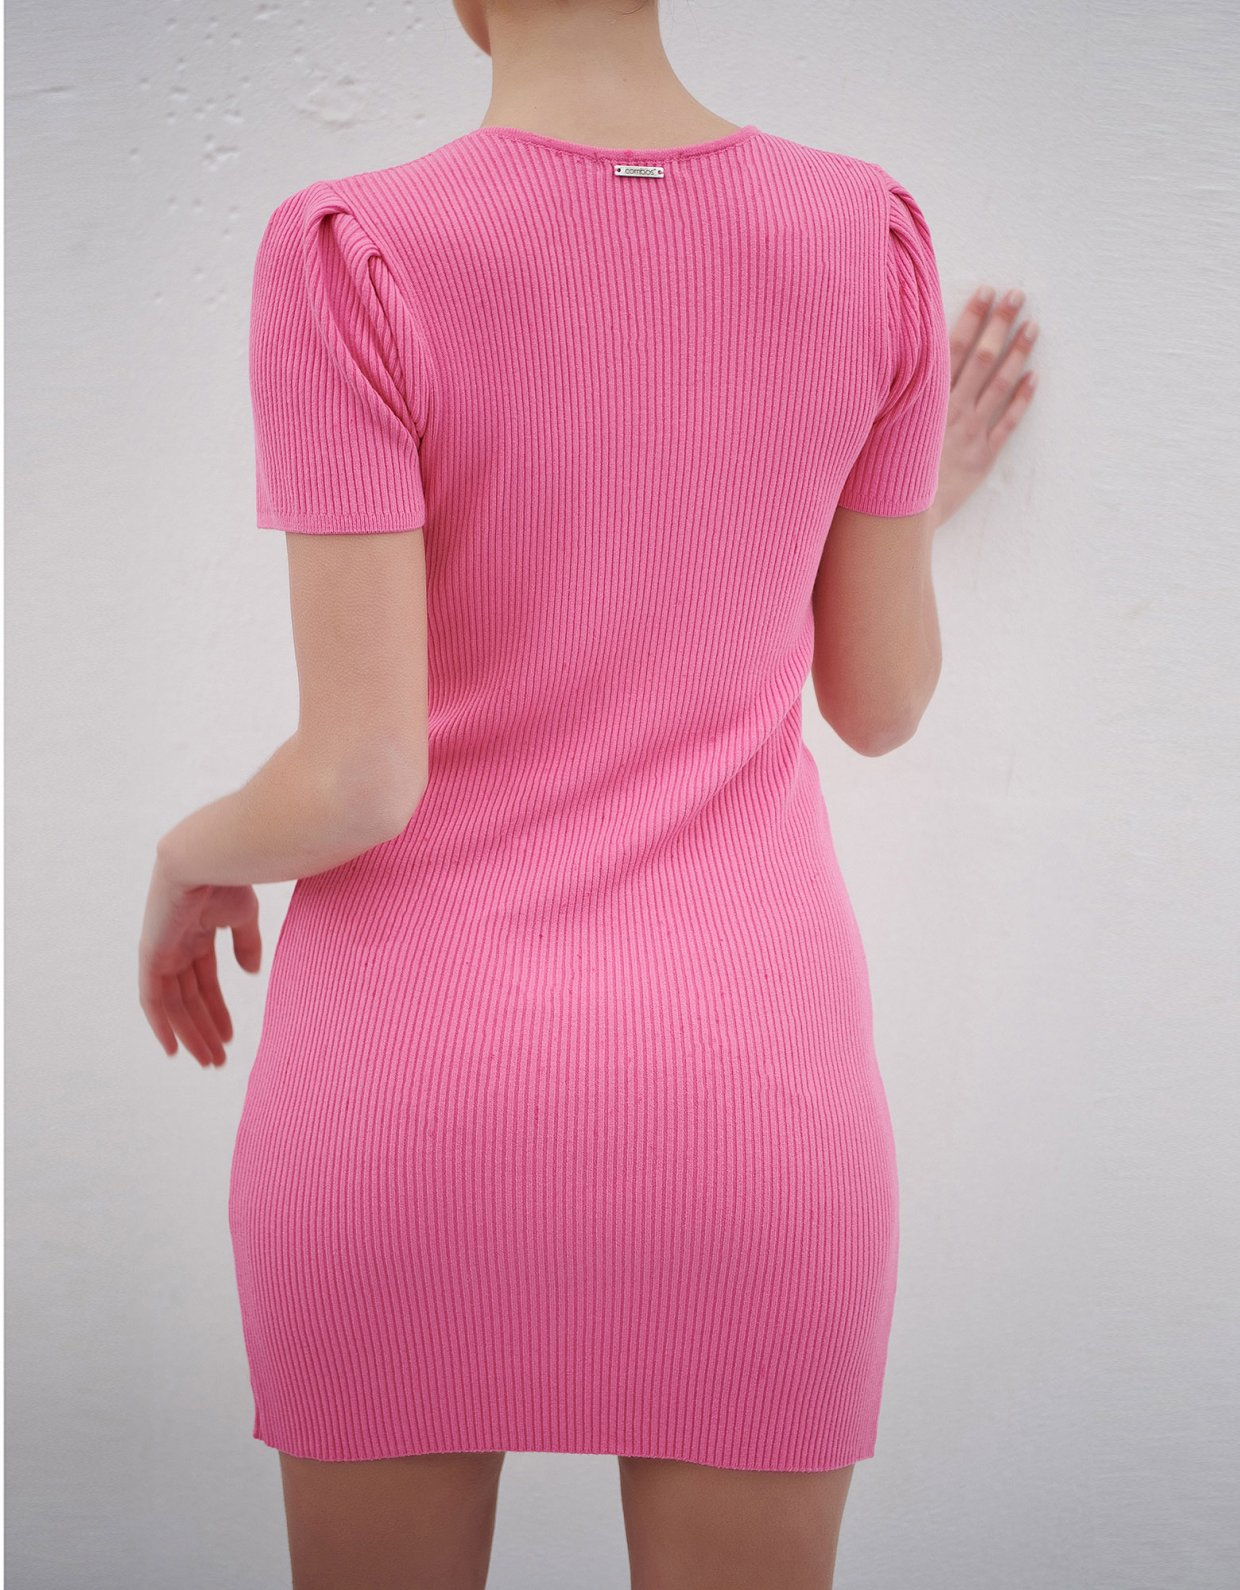 Combos Knitwear Combos S10 – Pink pleated shoulder dress